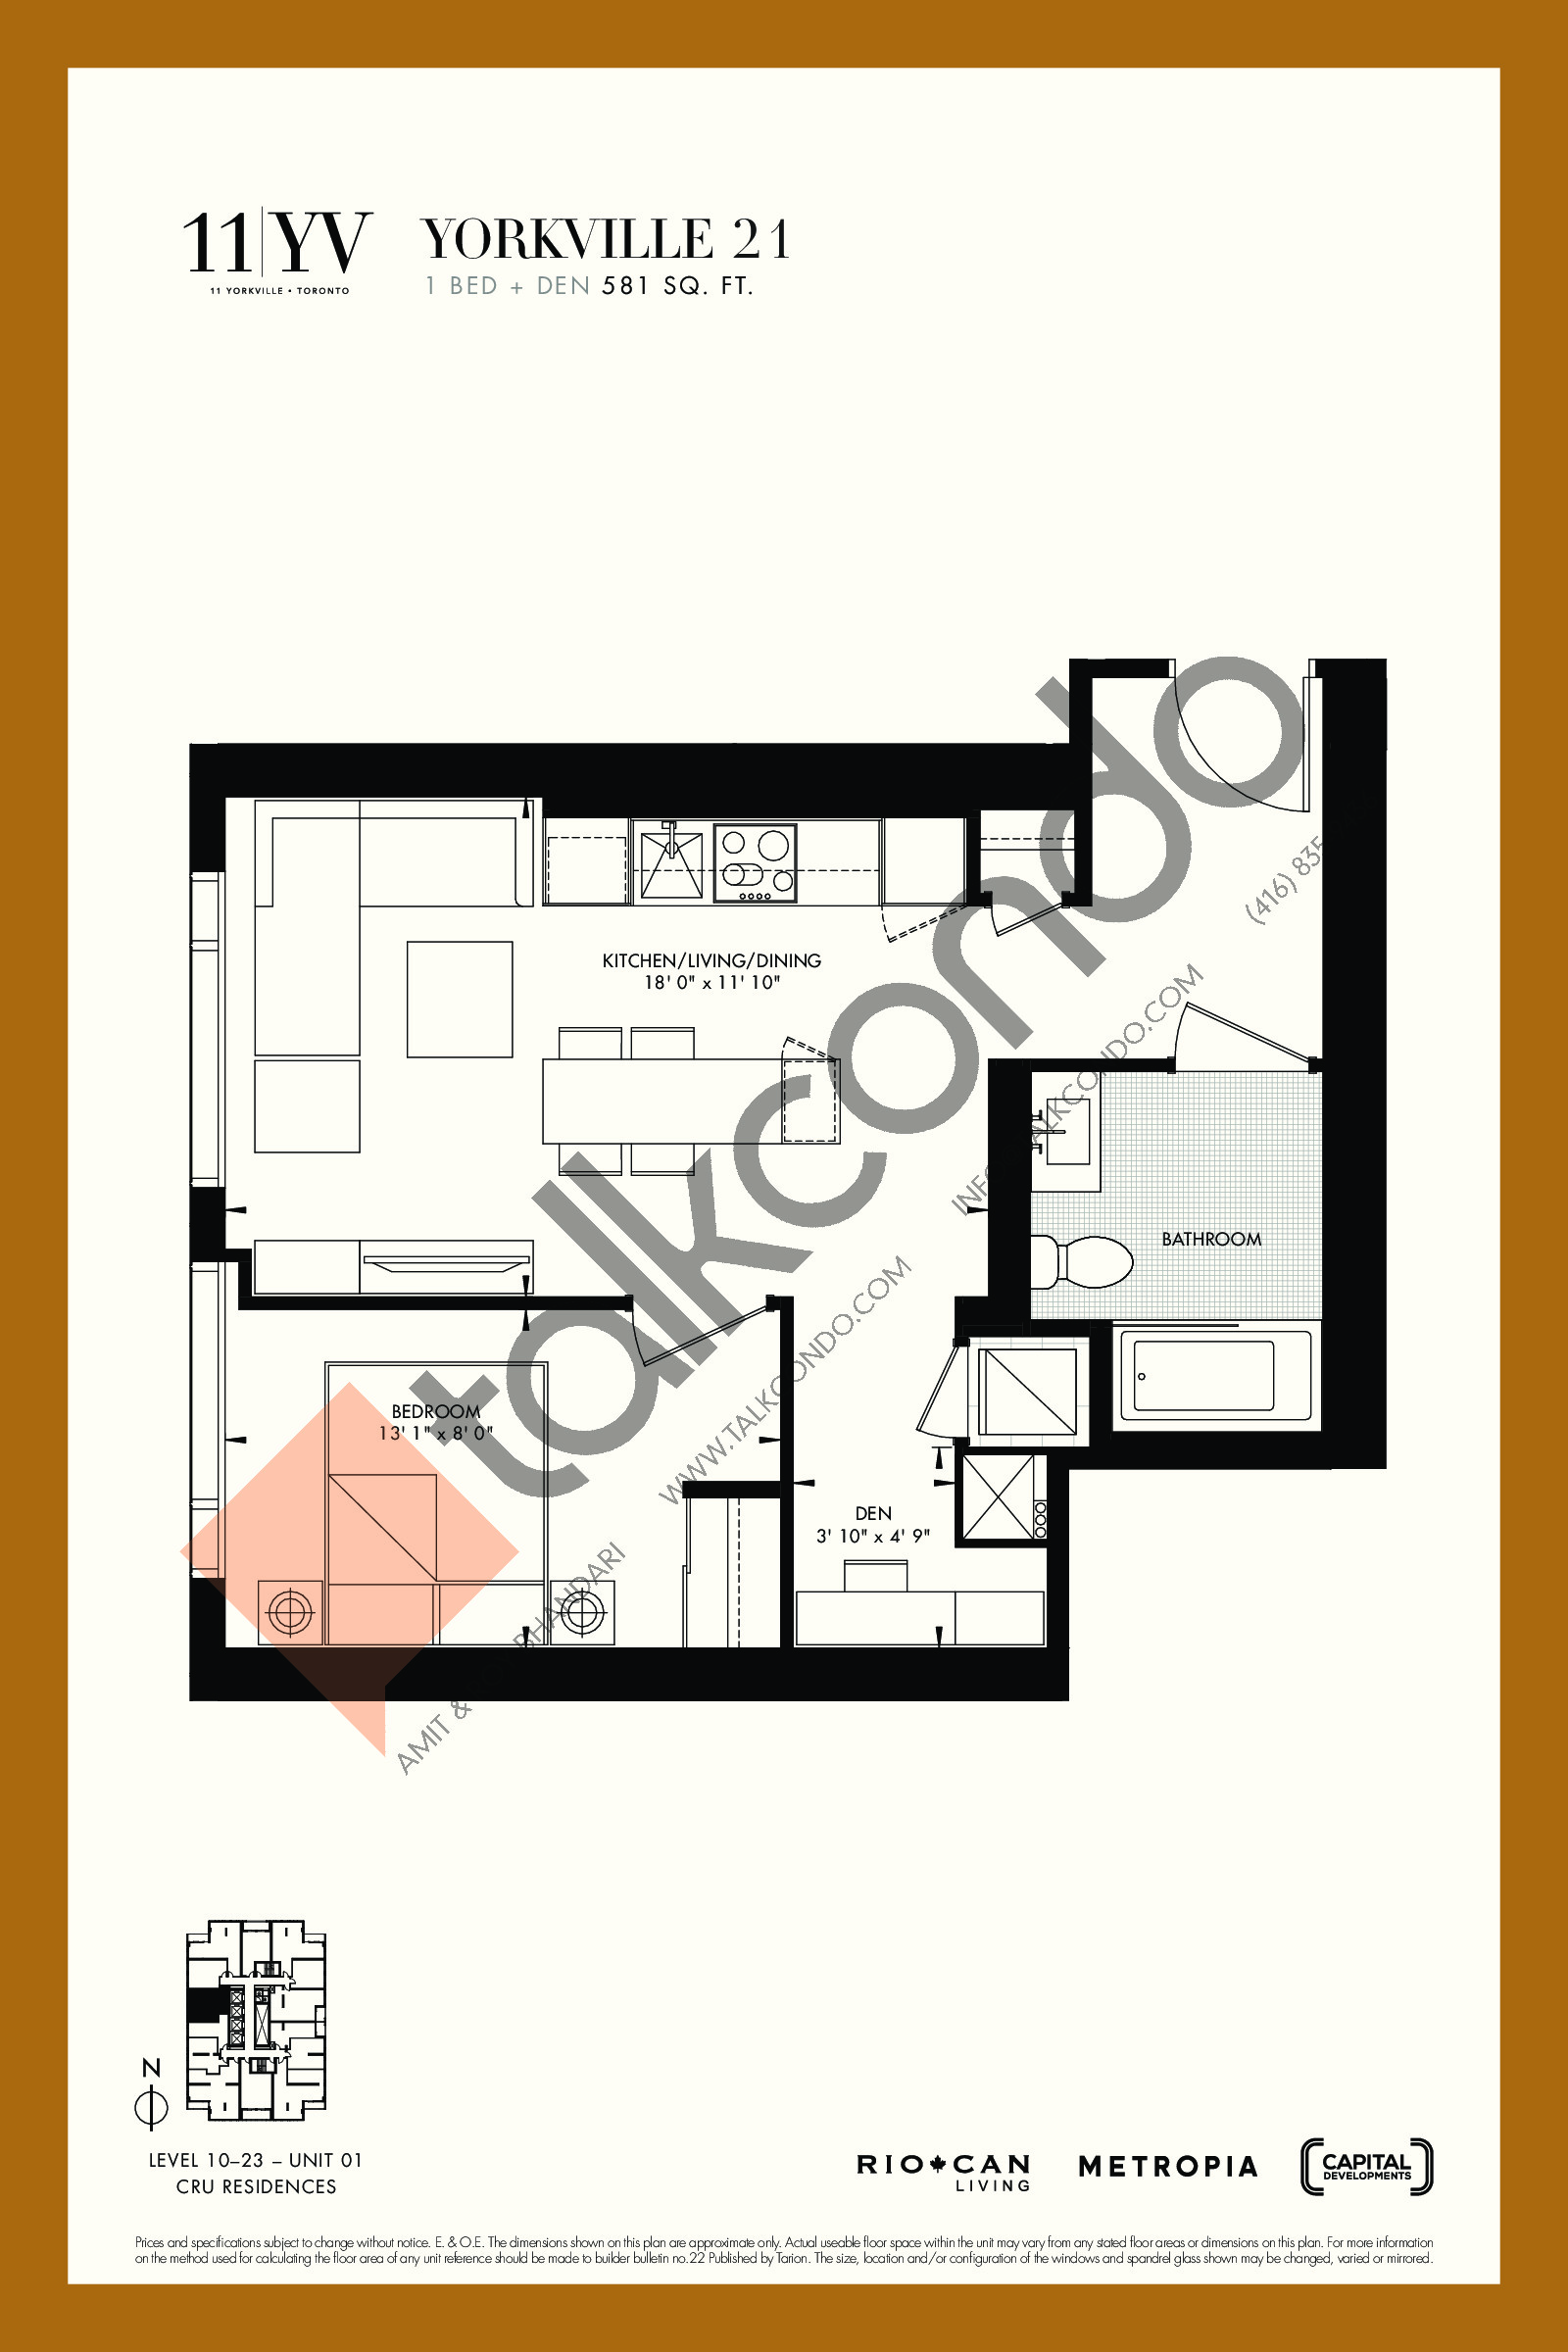 Yorkville 21 Floor Plan at 11YV Condos - 581 sq.ft